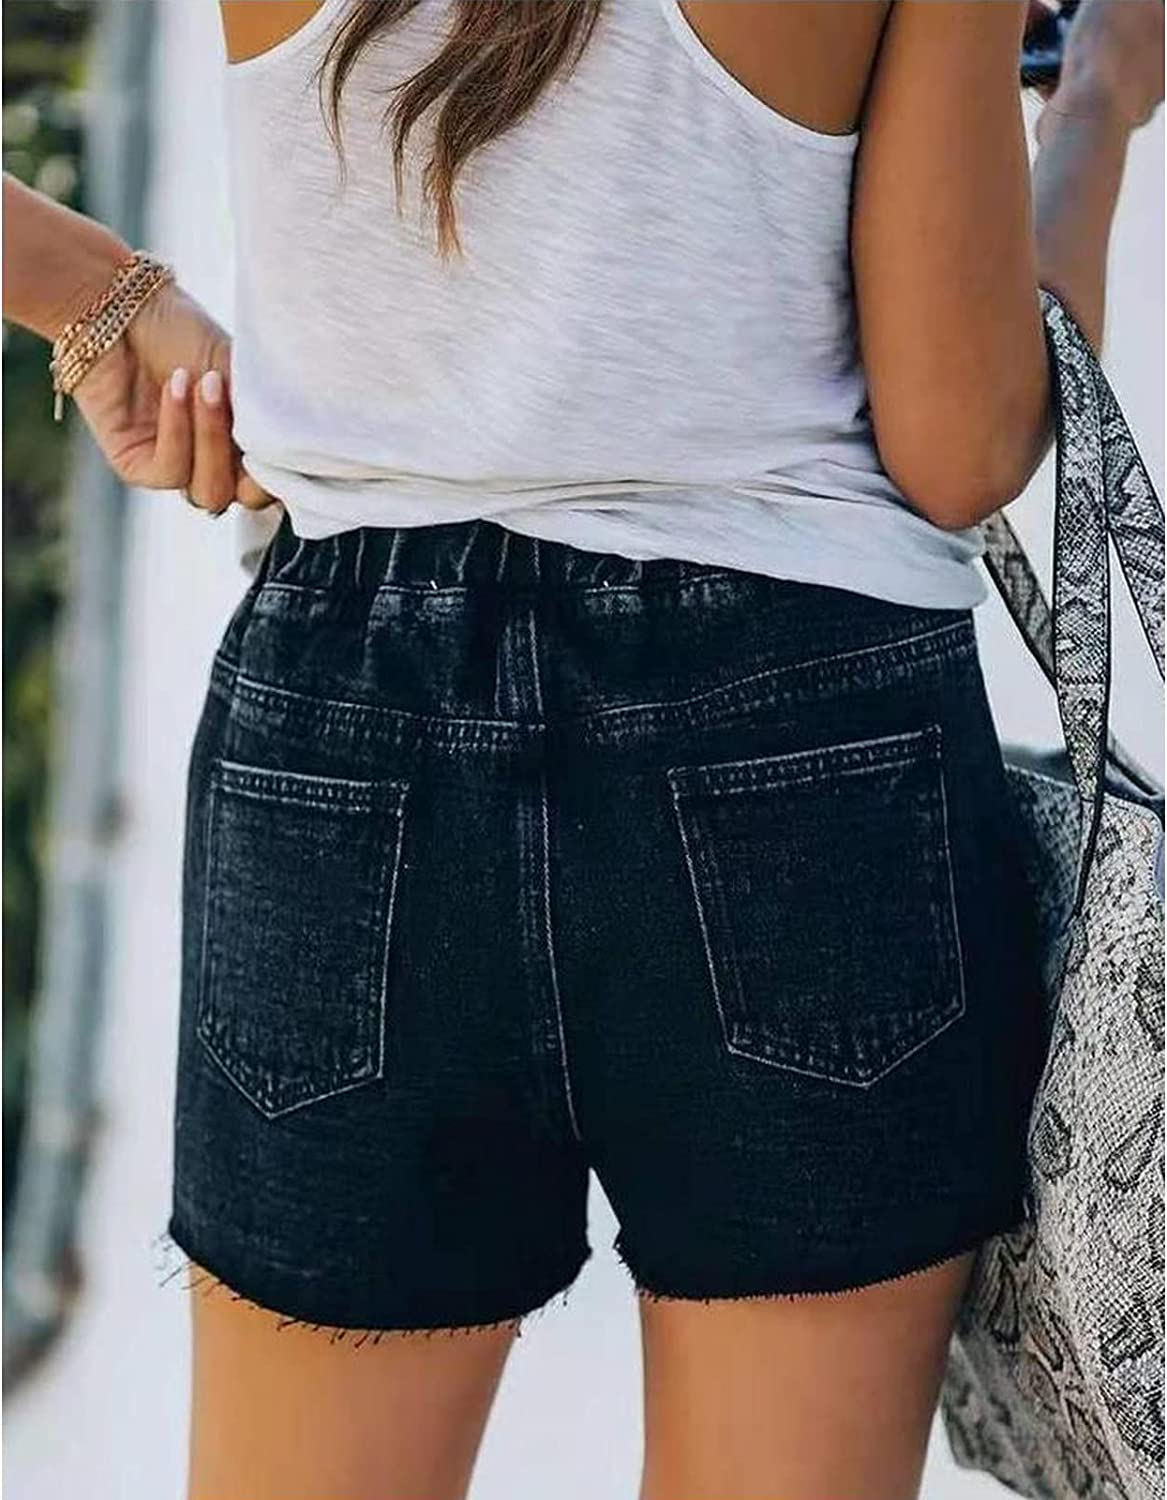 juyouqian Womens Casual Shorts Summer Drawstring Elastic Waist Comfy Frayed Jeans Short with Pockets